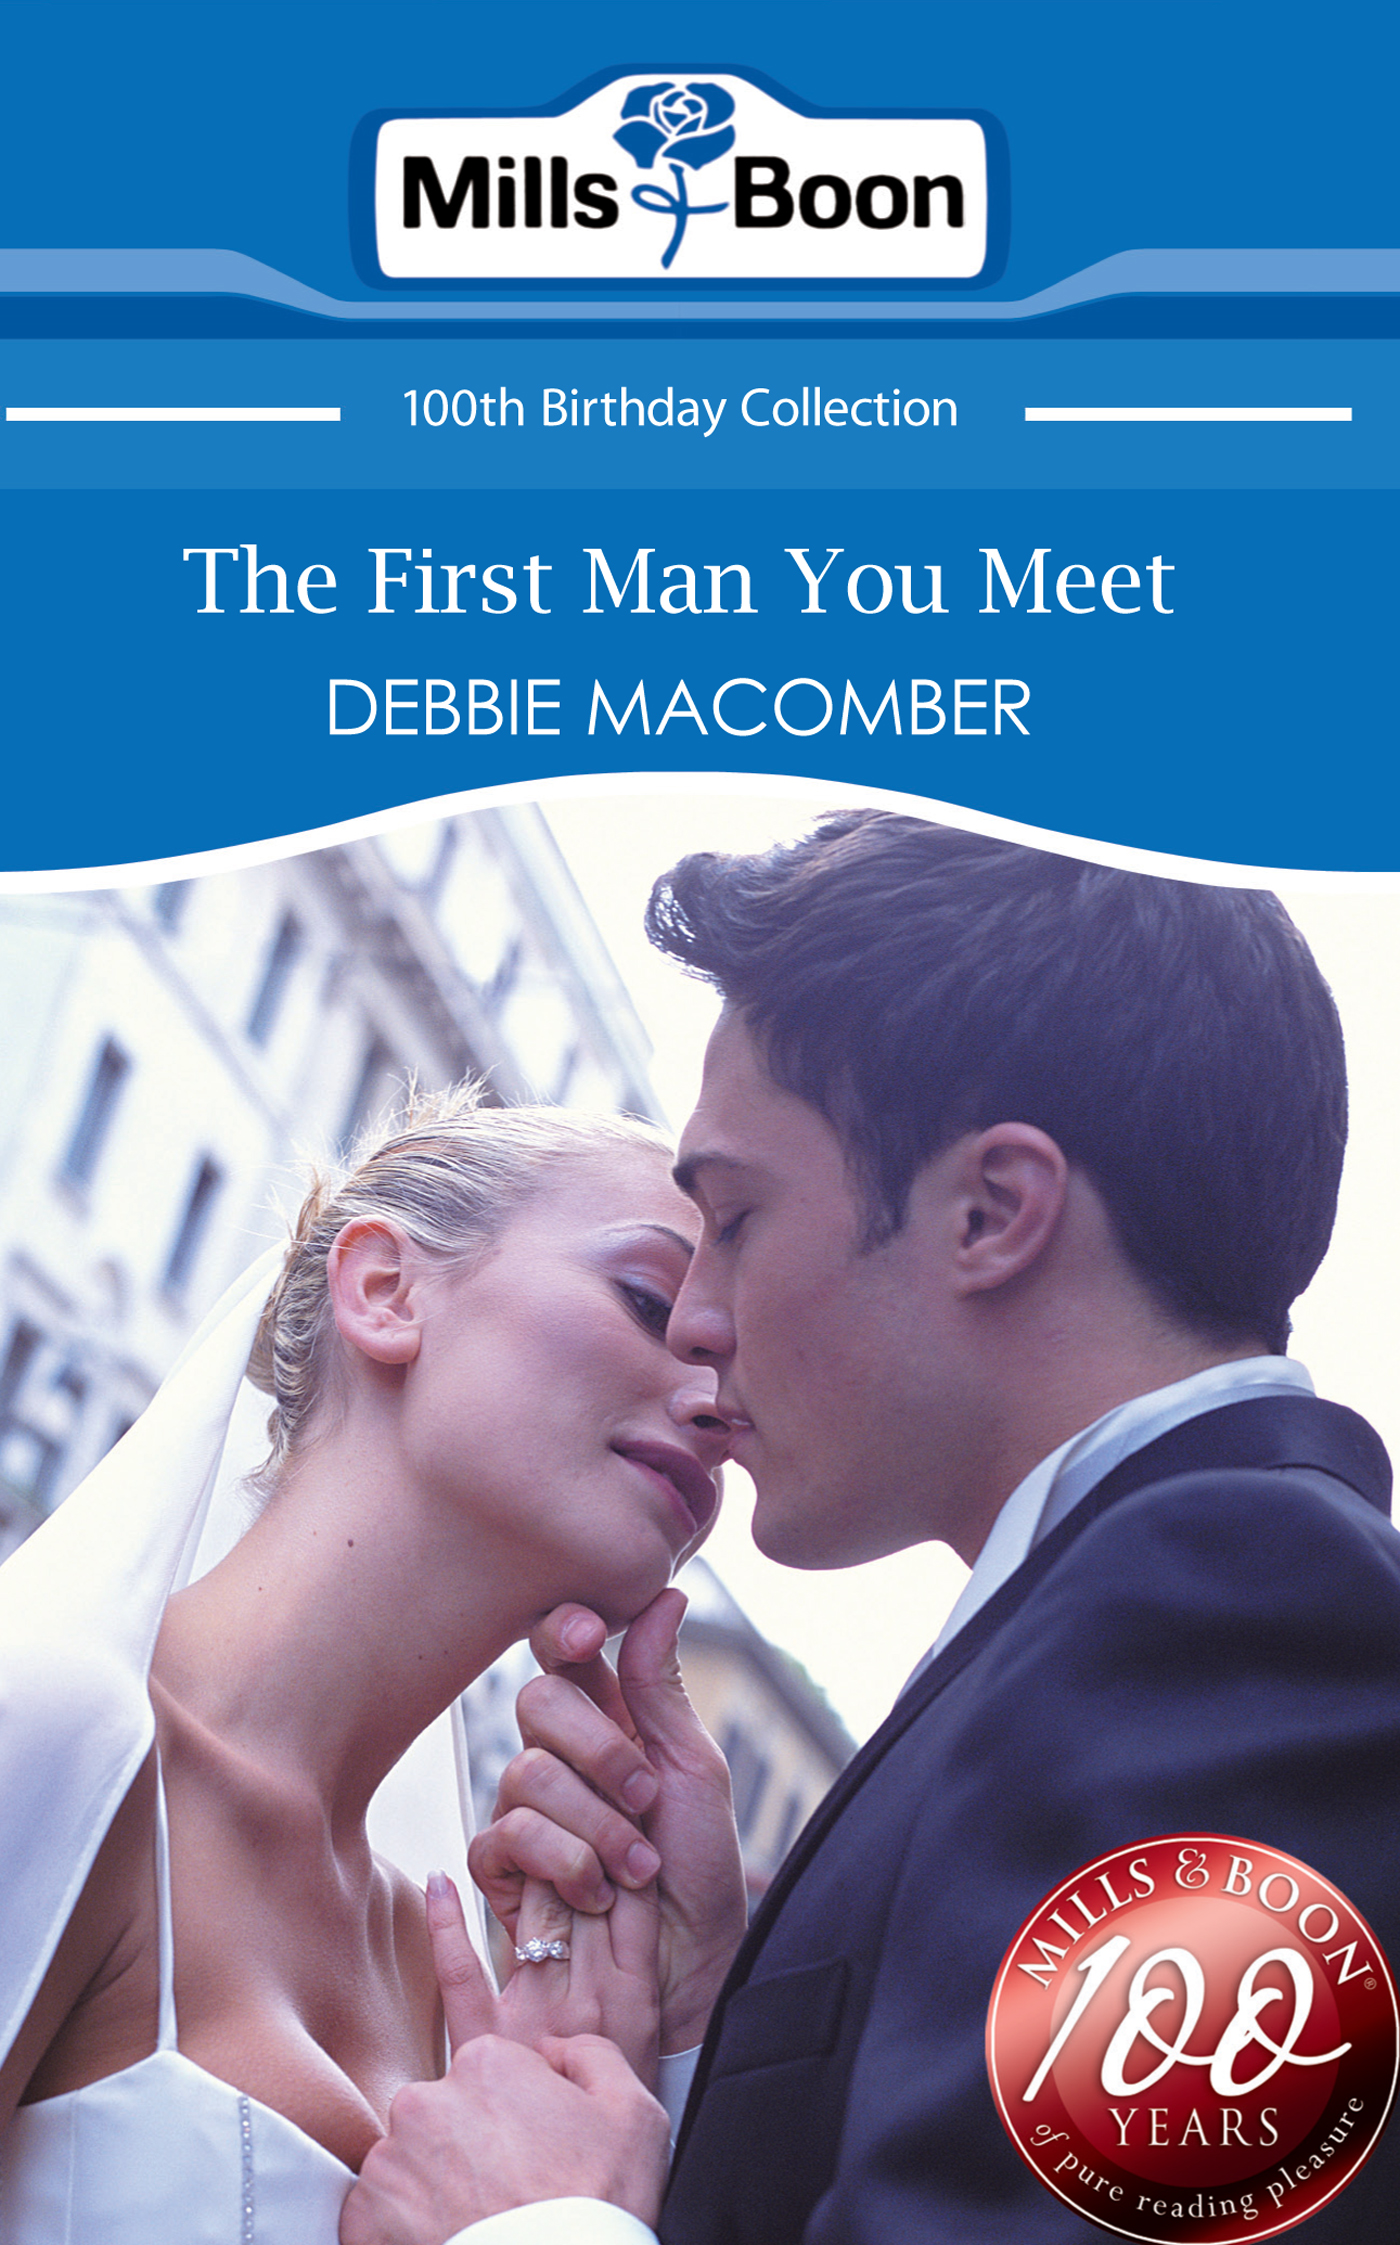 The First Man You Meet (Mills & Boon Short Stories)